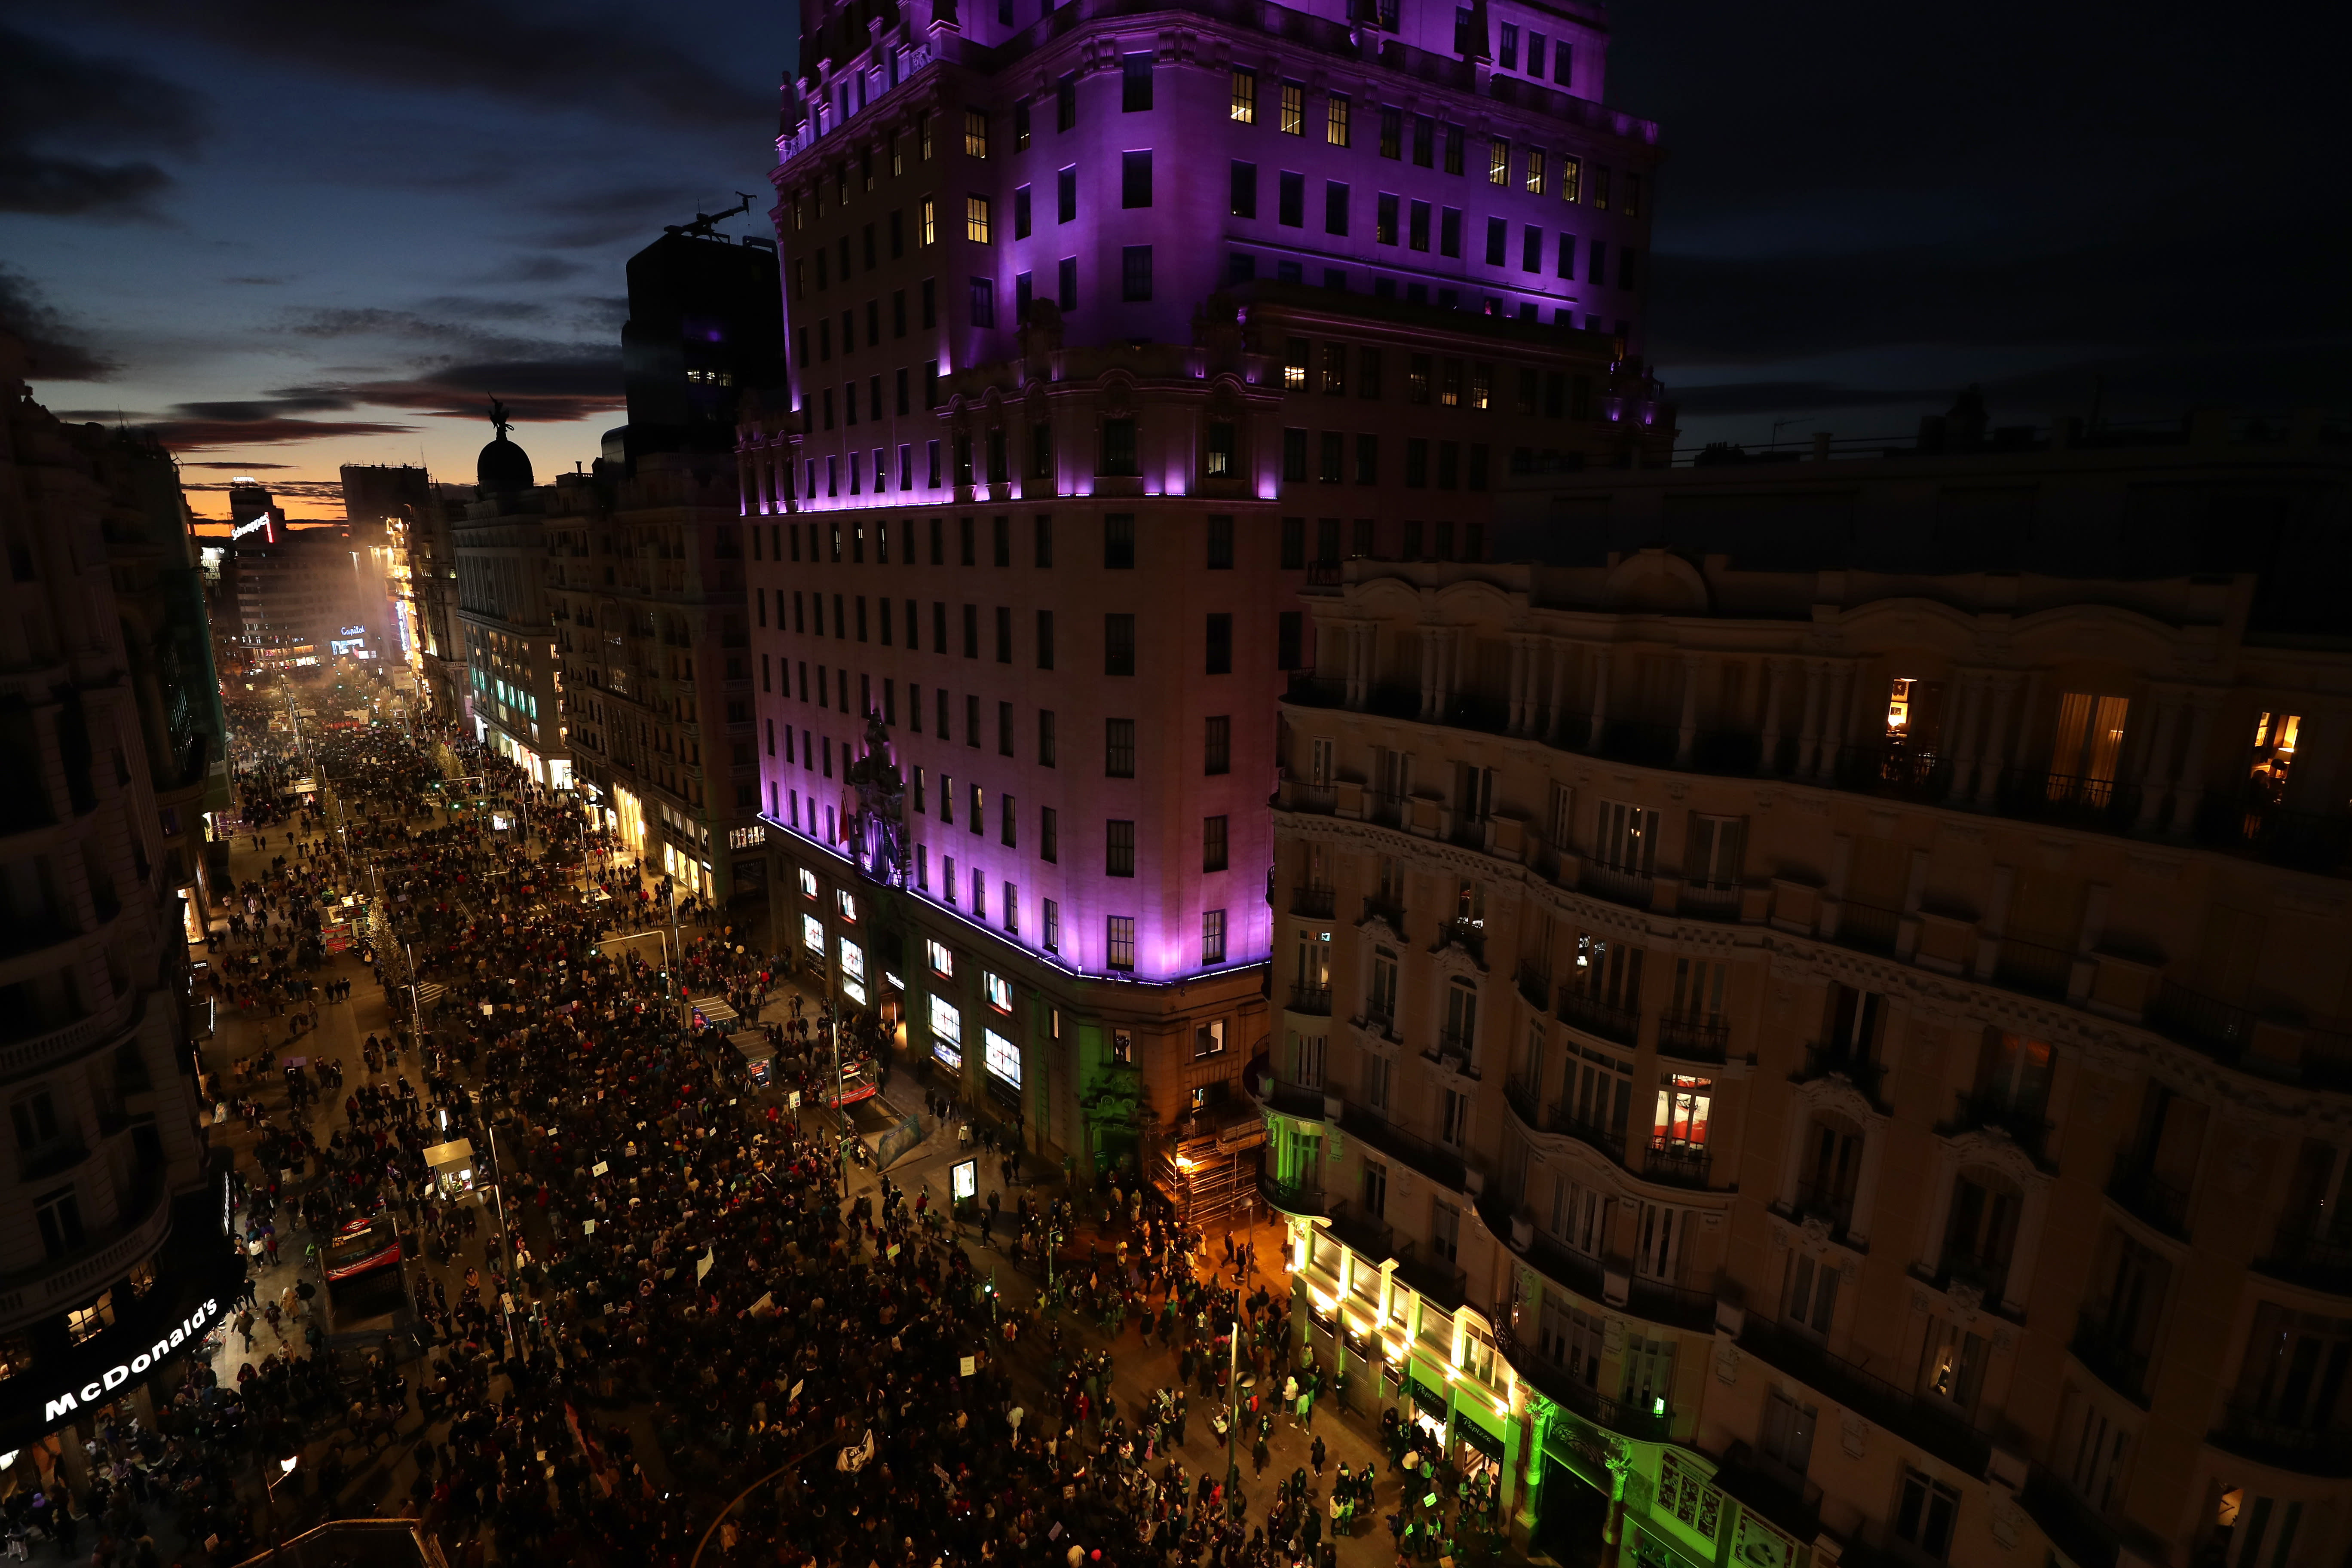 Participants gather for a rally to mark International Women's Day in Madrid, Spain, Sunday, March 8, 2020. Thousands of women are marching in Madrid and other Spanish cities as part of International Women's Day. (AP Photo/Manu Fernandez)